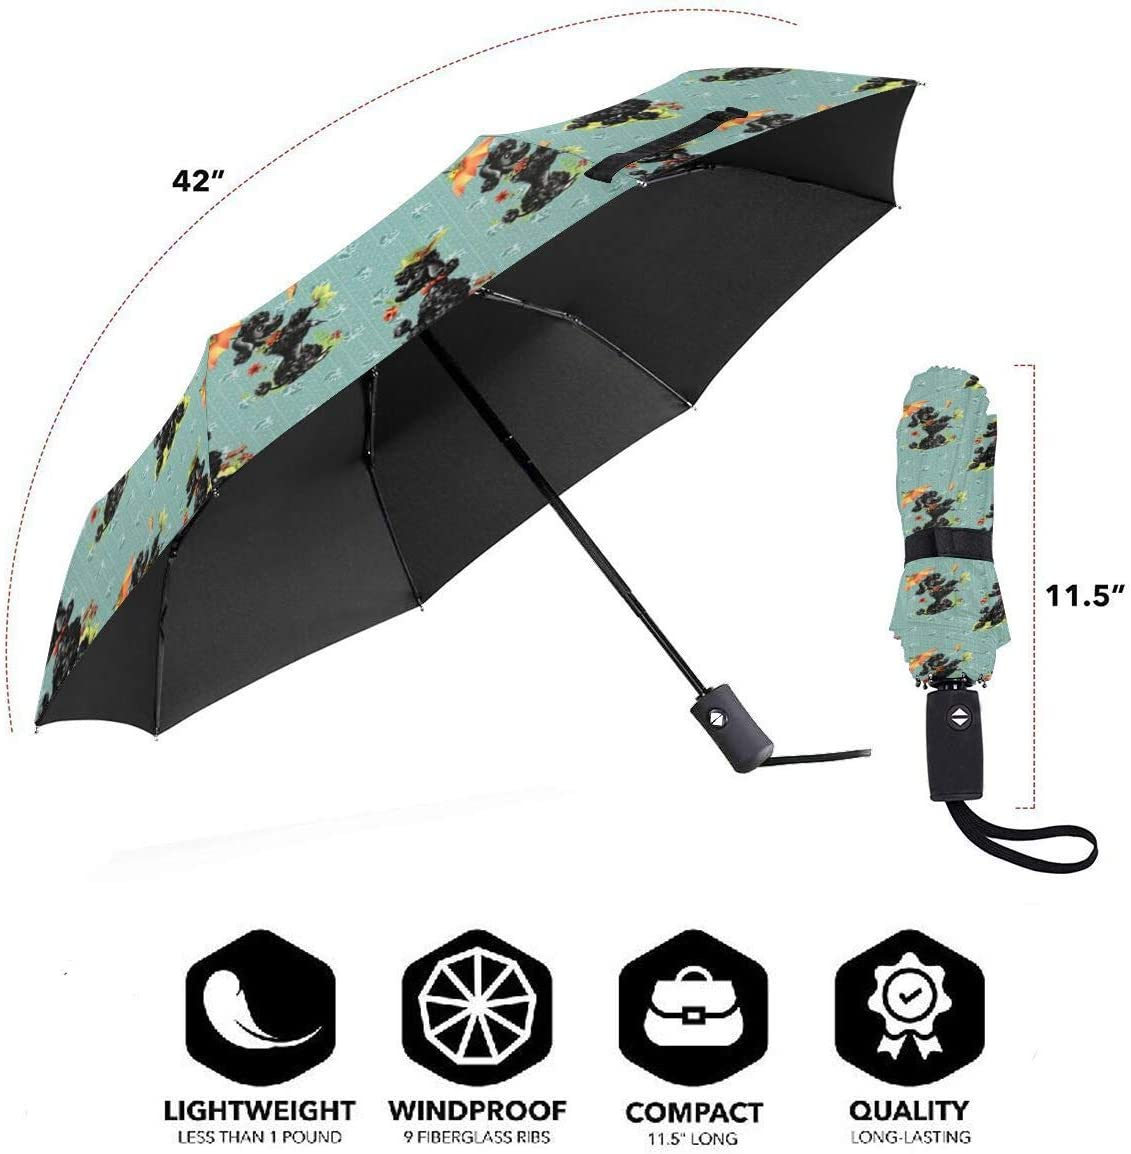 Prissy Poodles Green Compact Travel Umbrella Windproof Reinforced Canopy Ergonomic Handle Auto Open//Close Multiple Colors